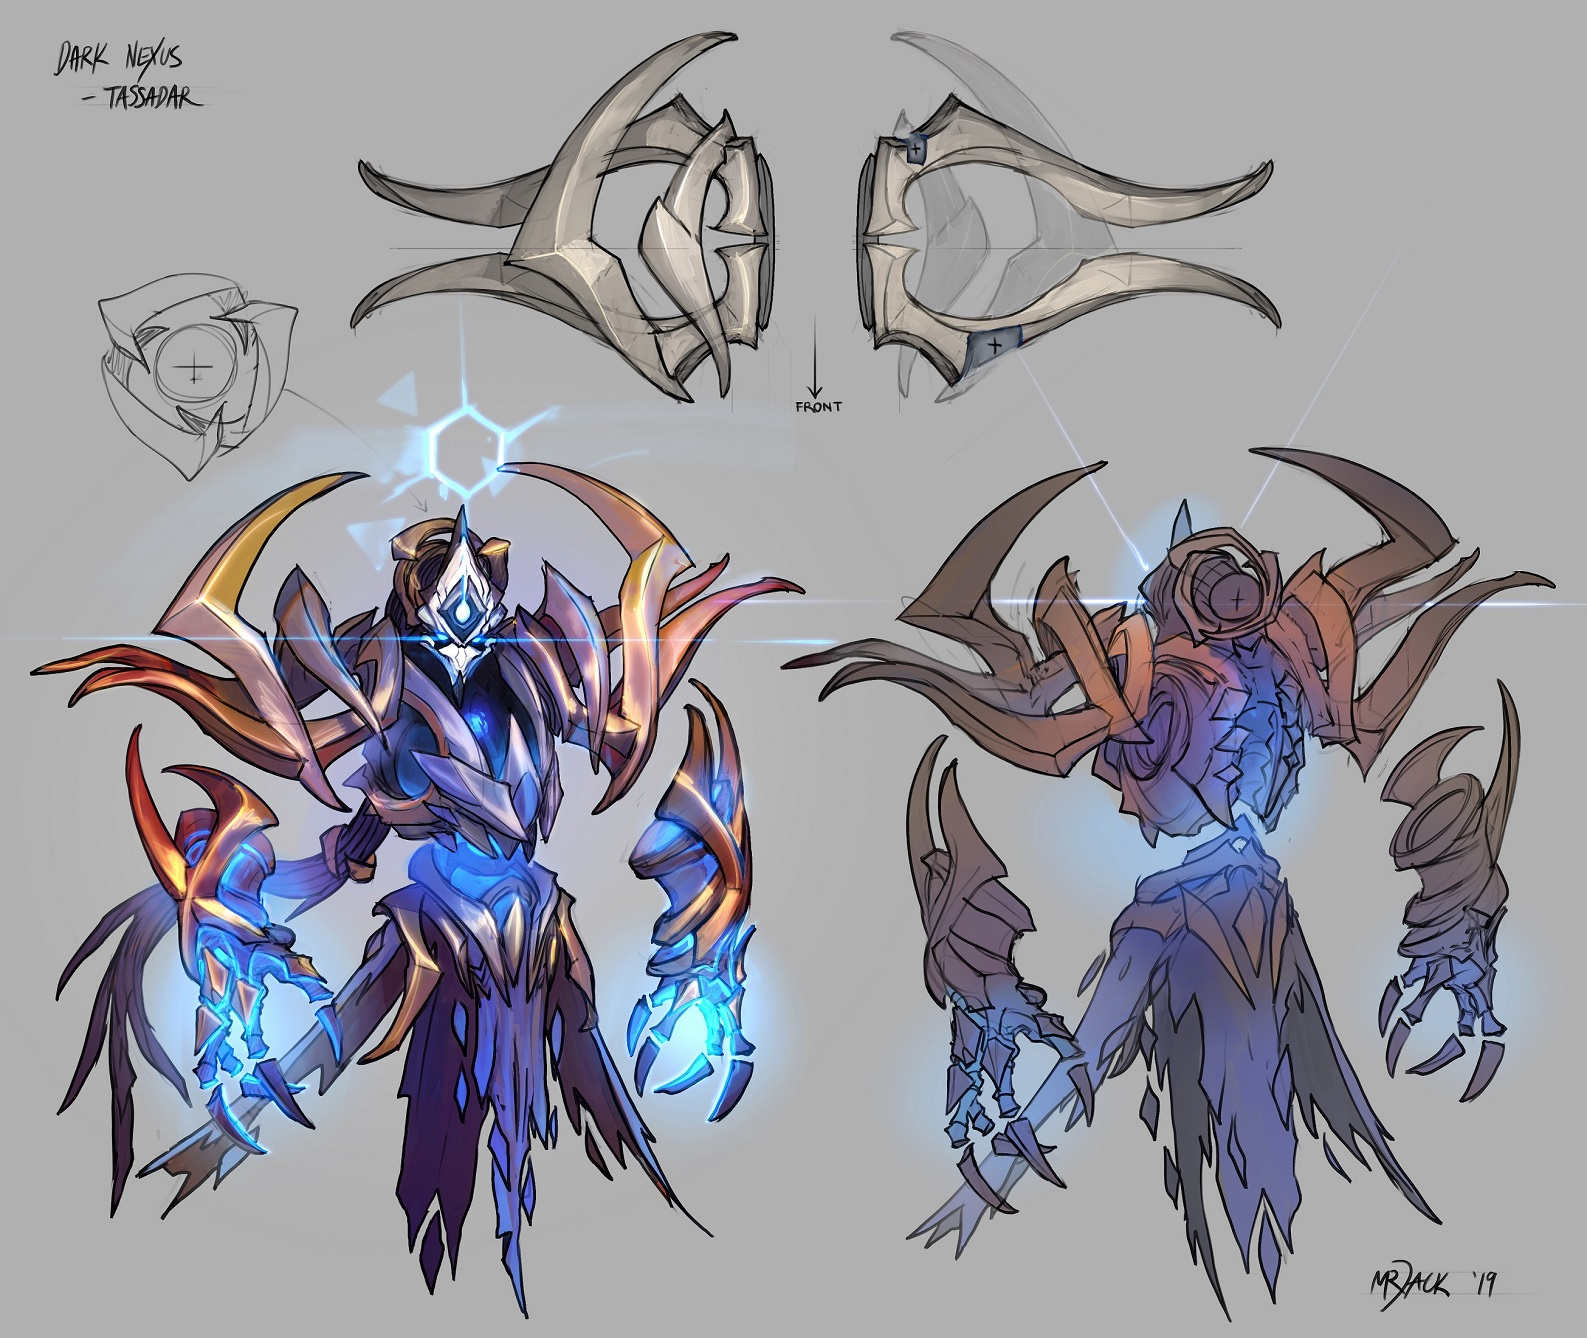 Dark Nexus Tassadar Concept Art